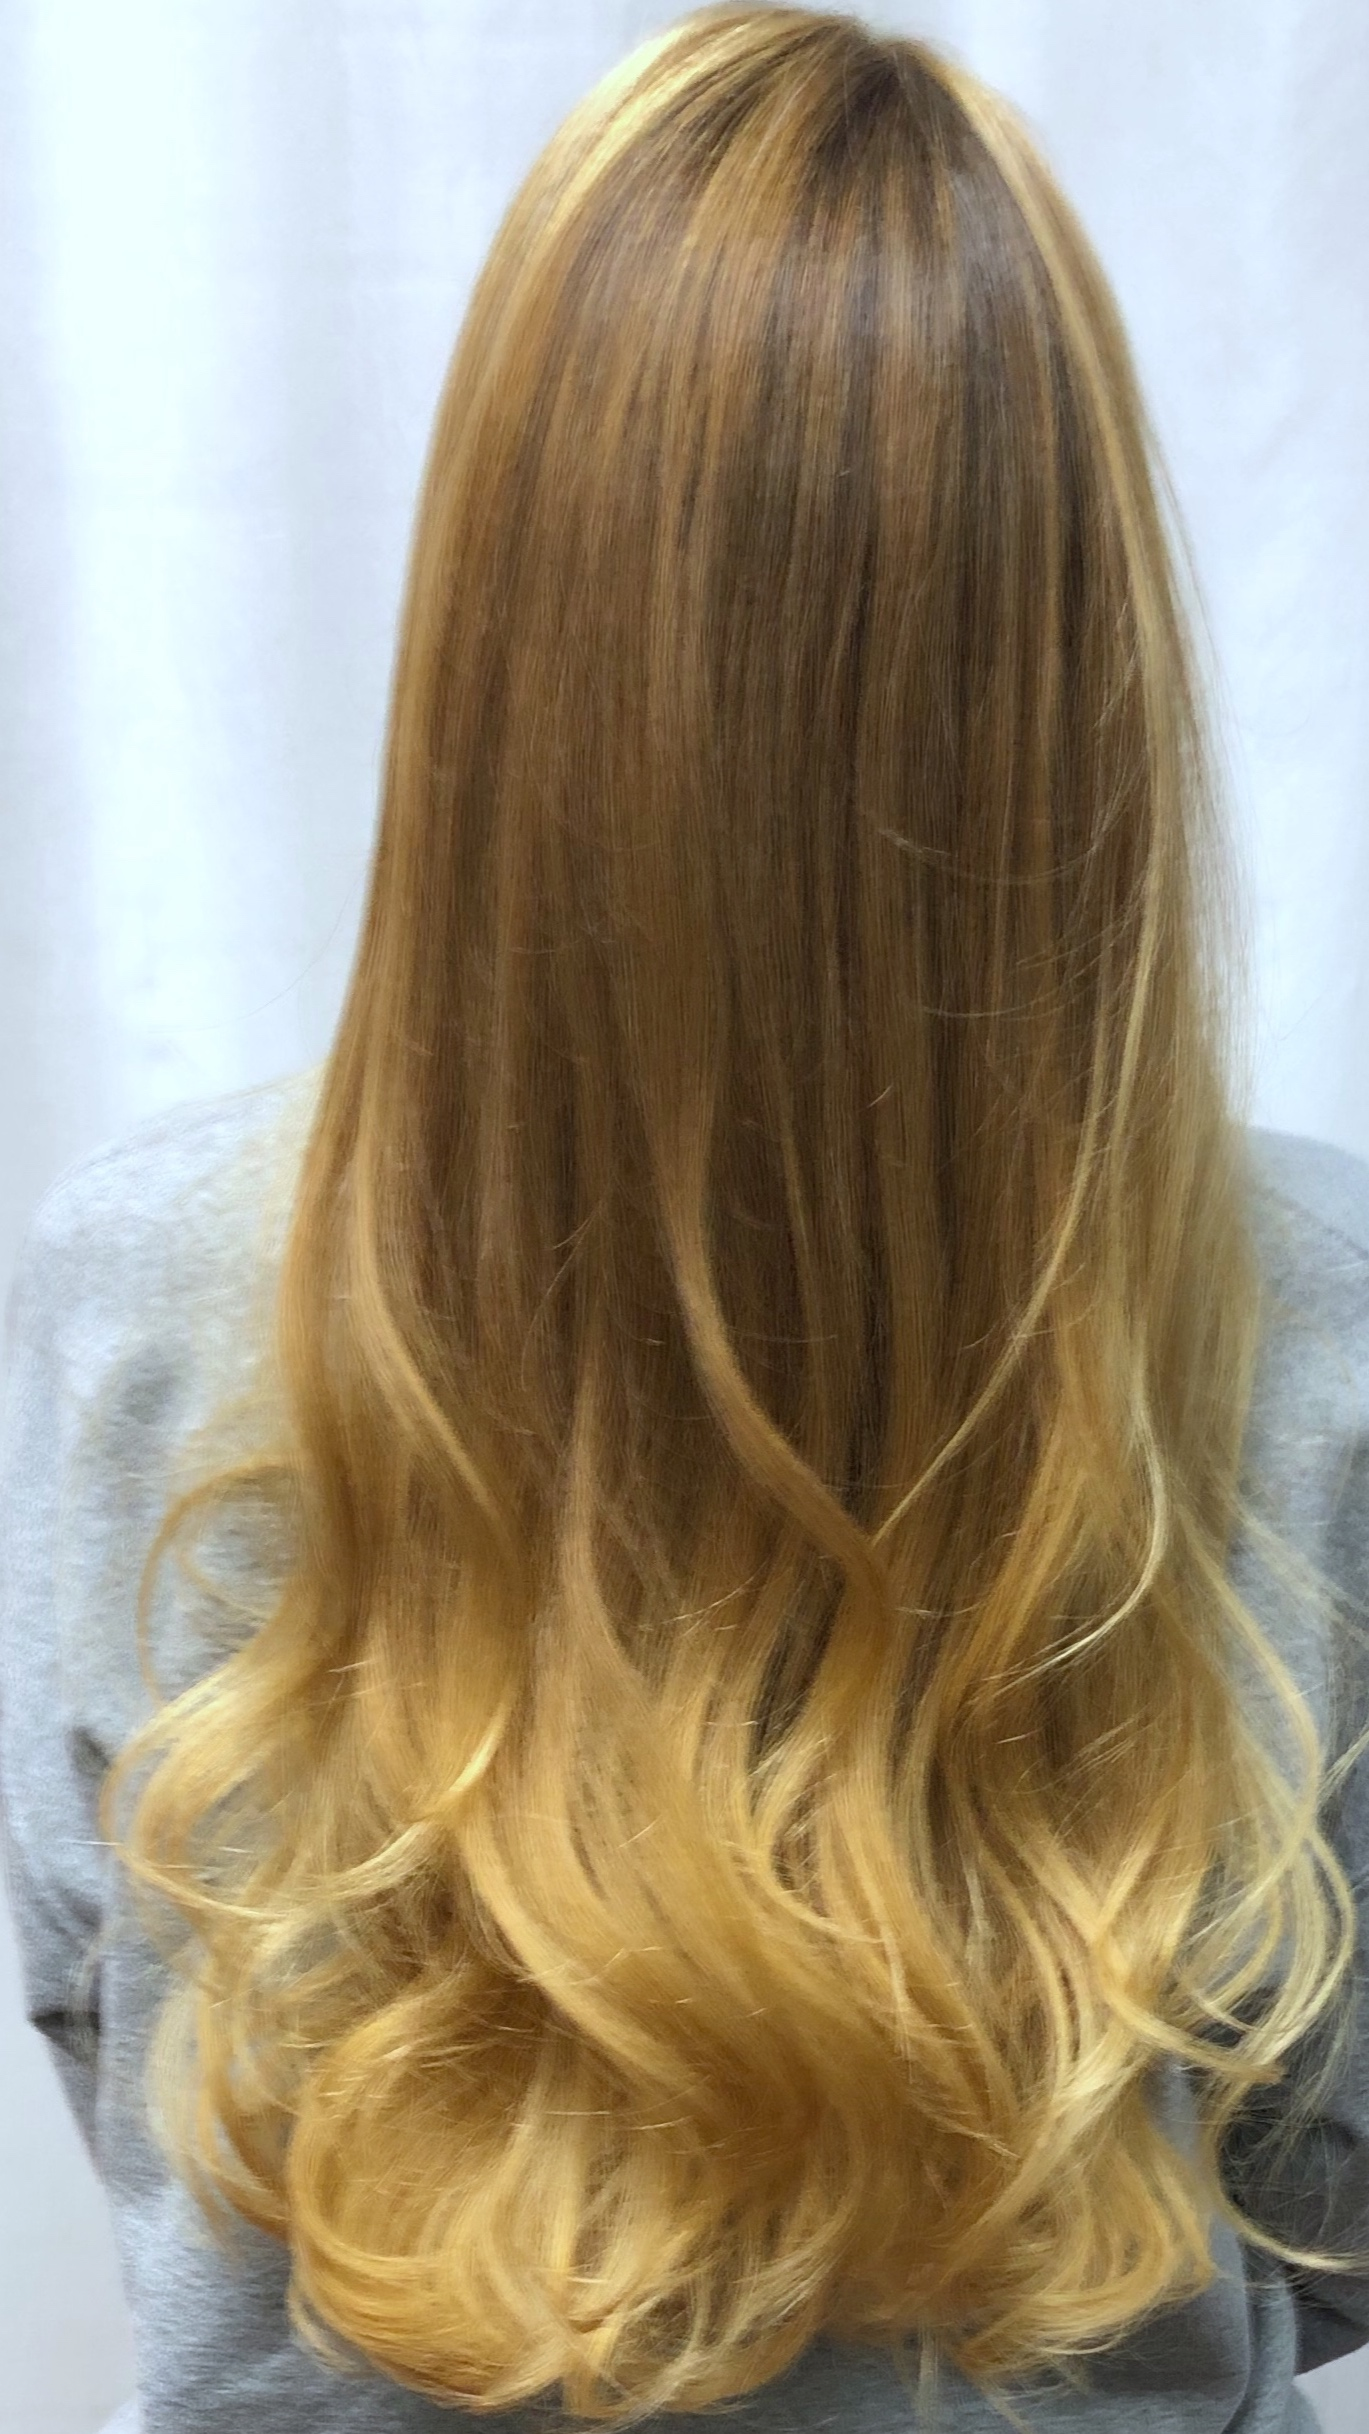 Look At That Dimension - Take a look at the balayage color design here. You can clearly see the transition achieved with low-lights fading to mid-lights and fading into highlights. Absolutely beautiful and natural looking.